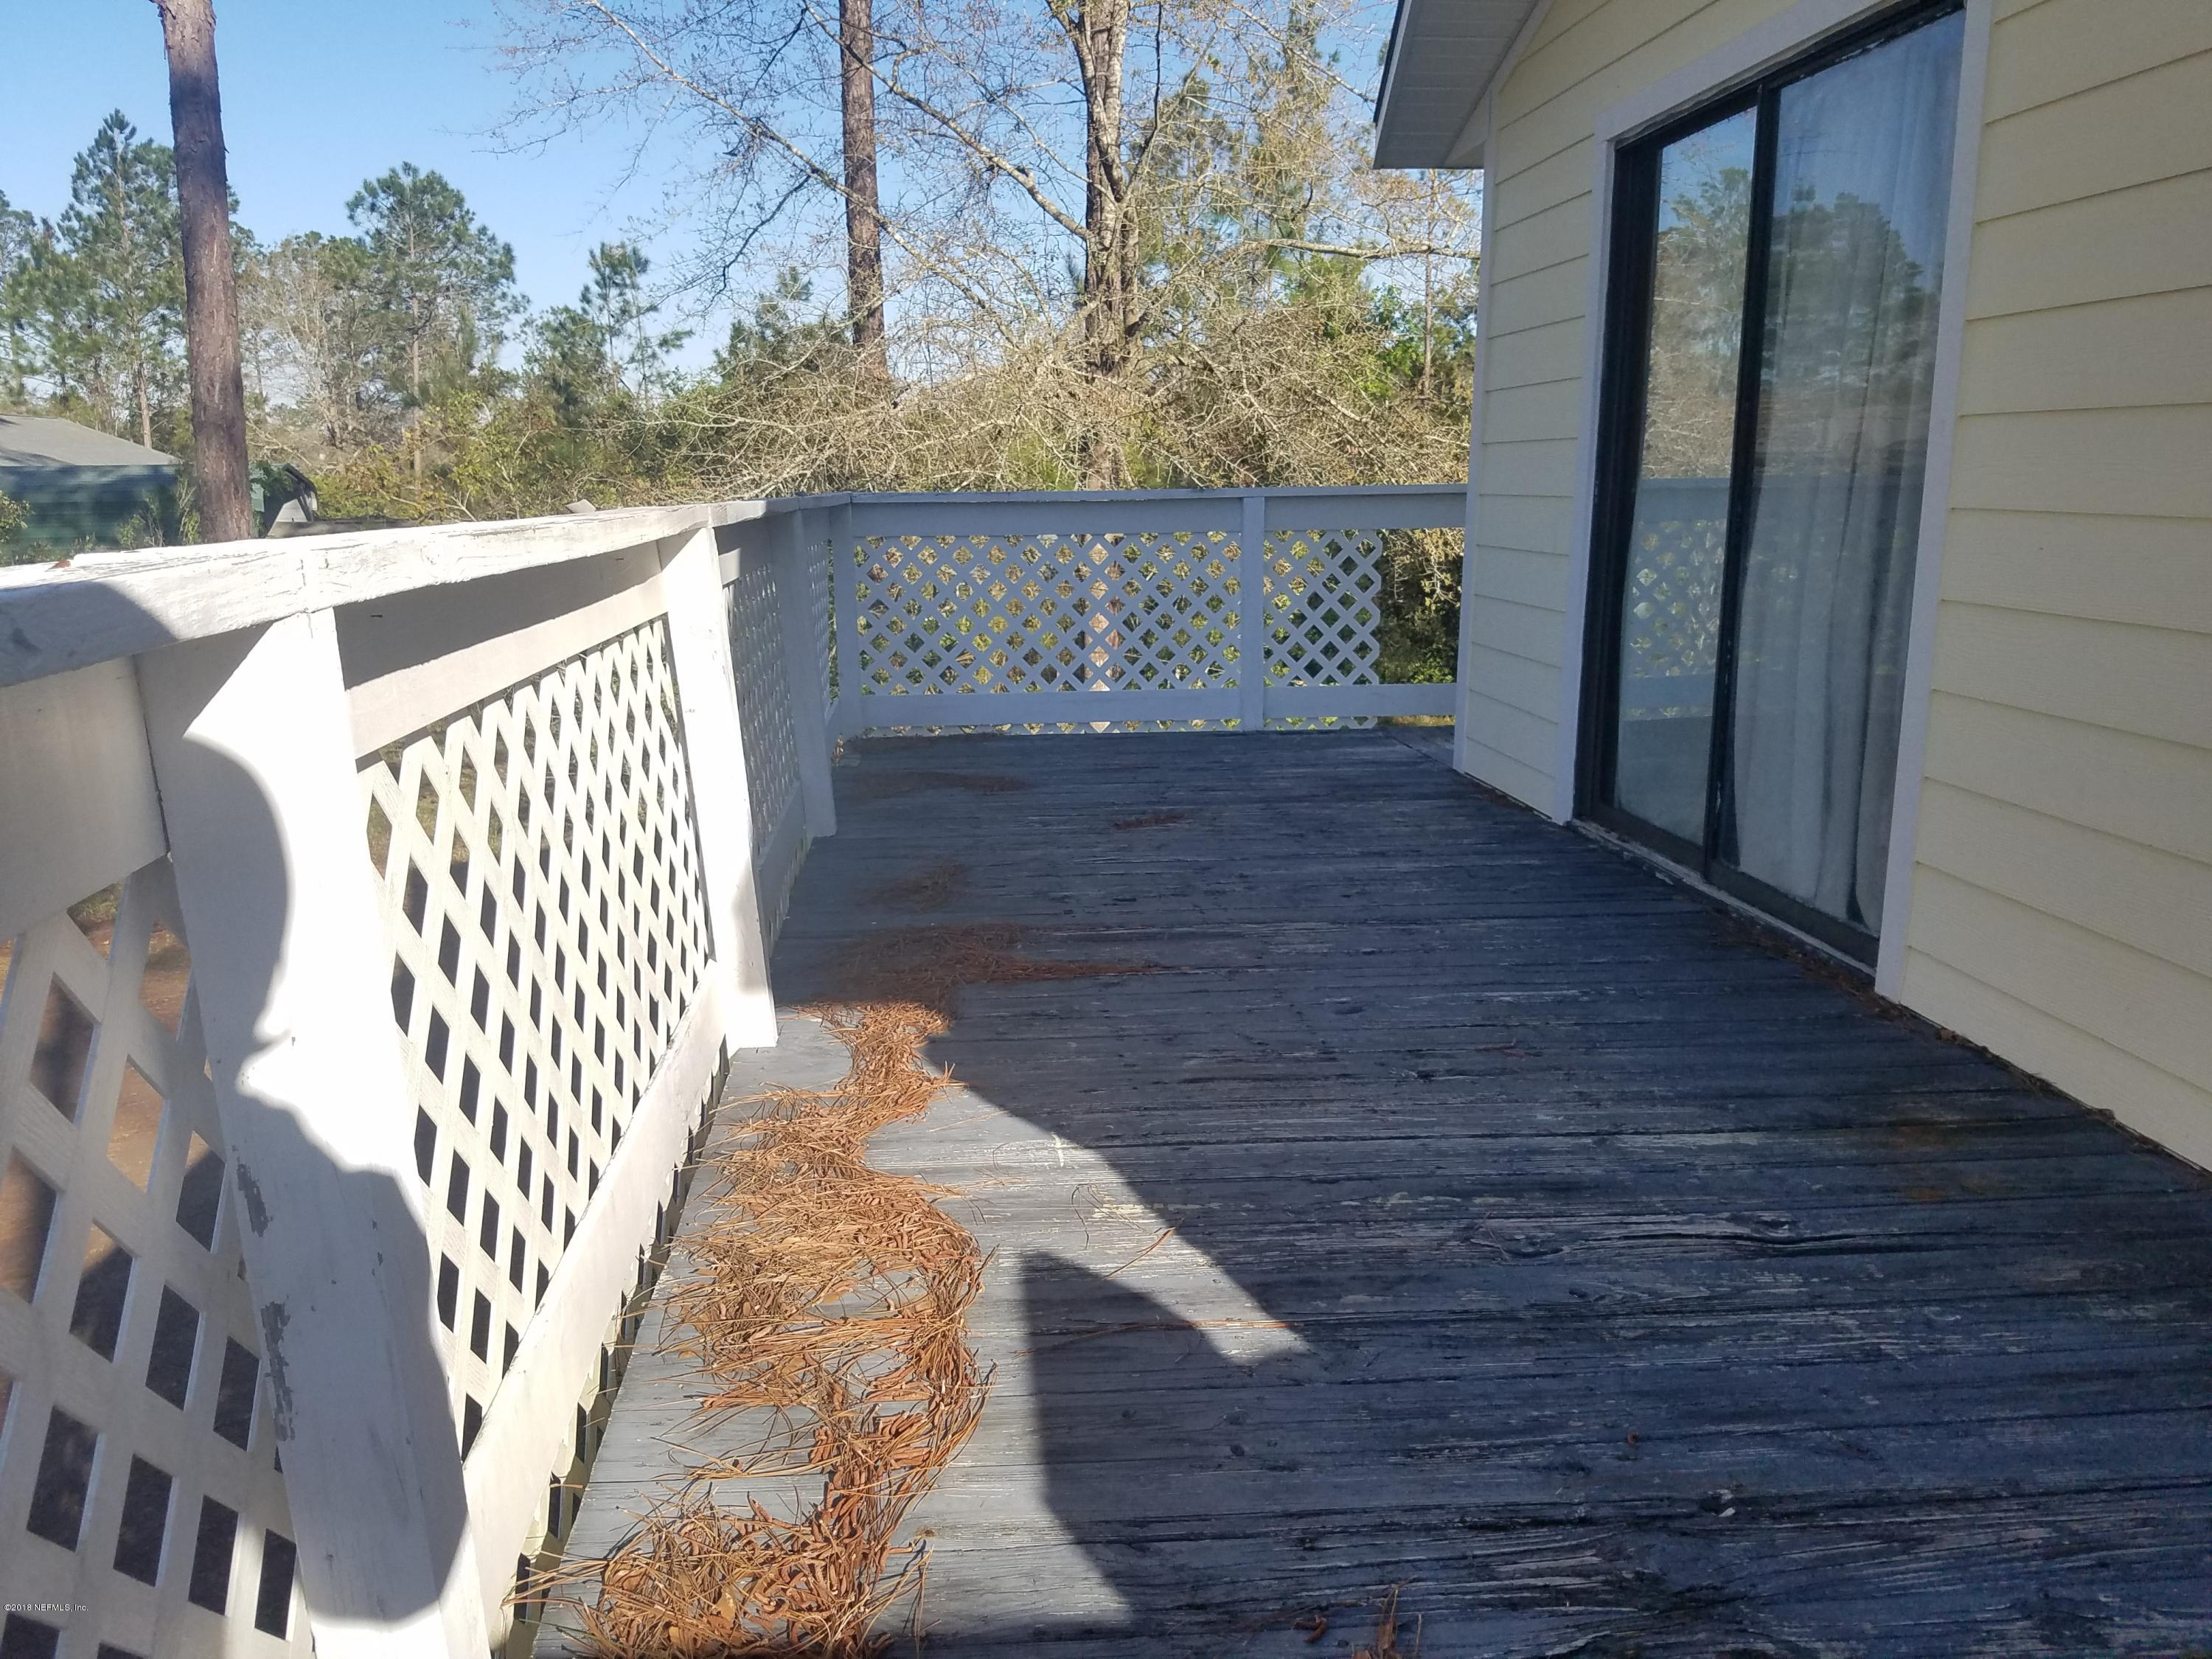 1390 COUNTRYSIDE ACRES, BRYCEVILLE, FLORIDA 32009, 3 Bedrooms Bedrooms, ,1 BathroomBathrooms,Residential - single family,For sale,COUNTRYSIDE ACRES,927412